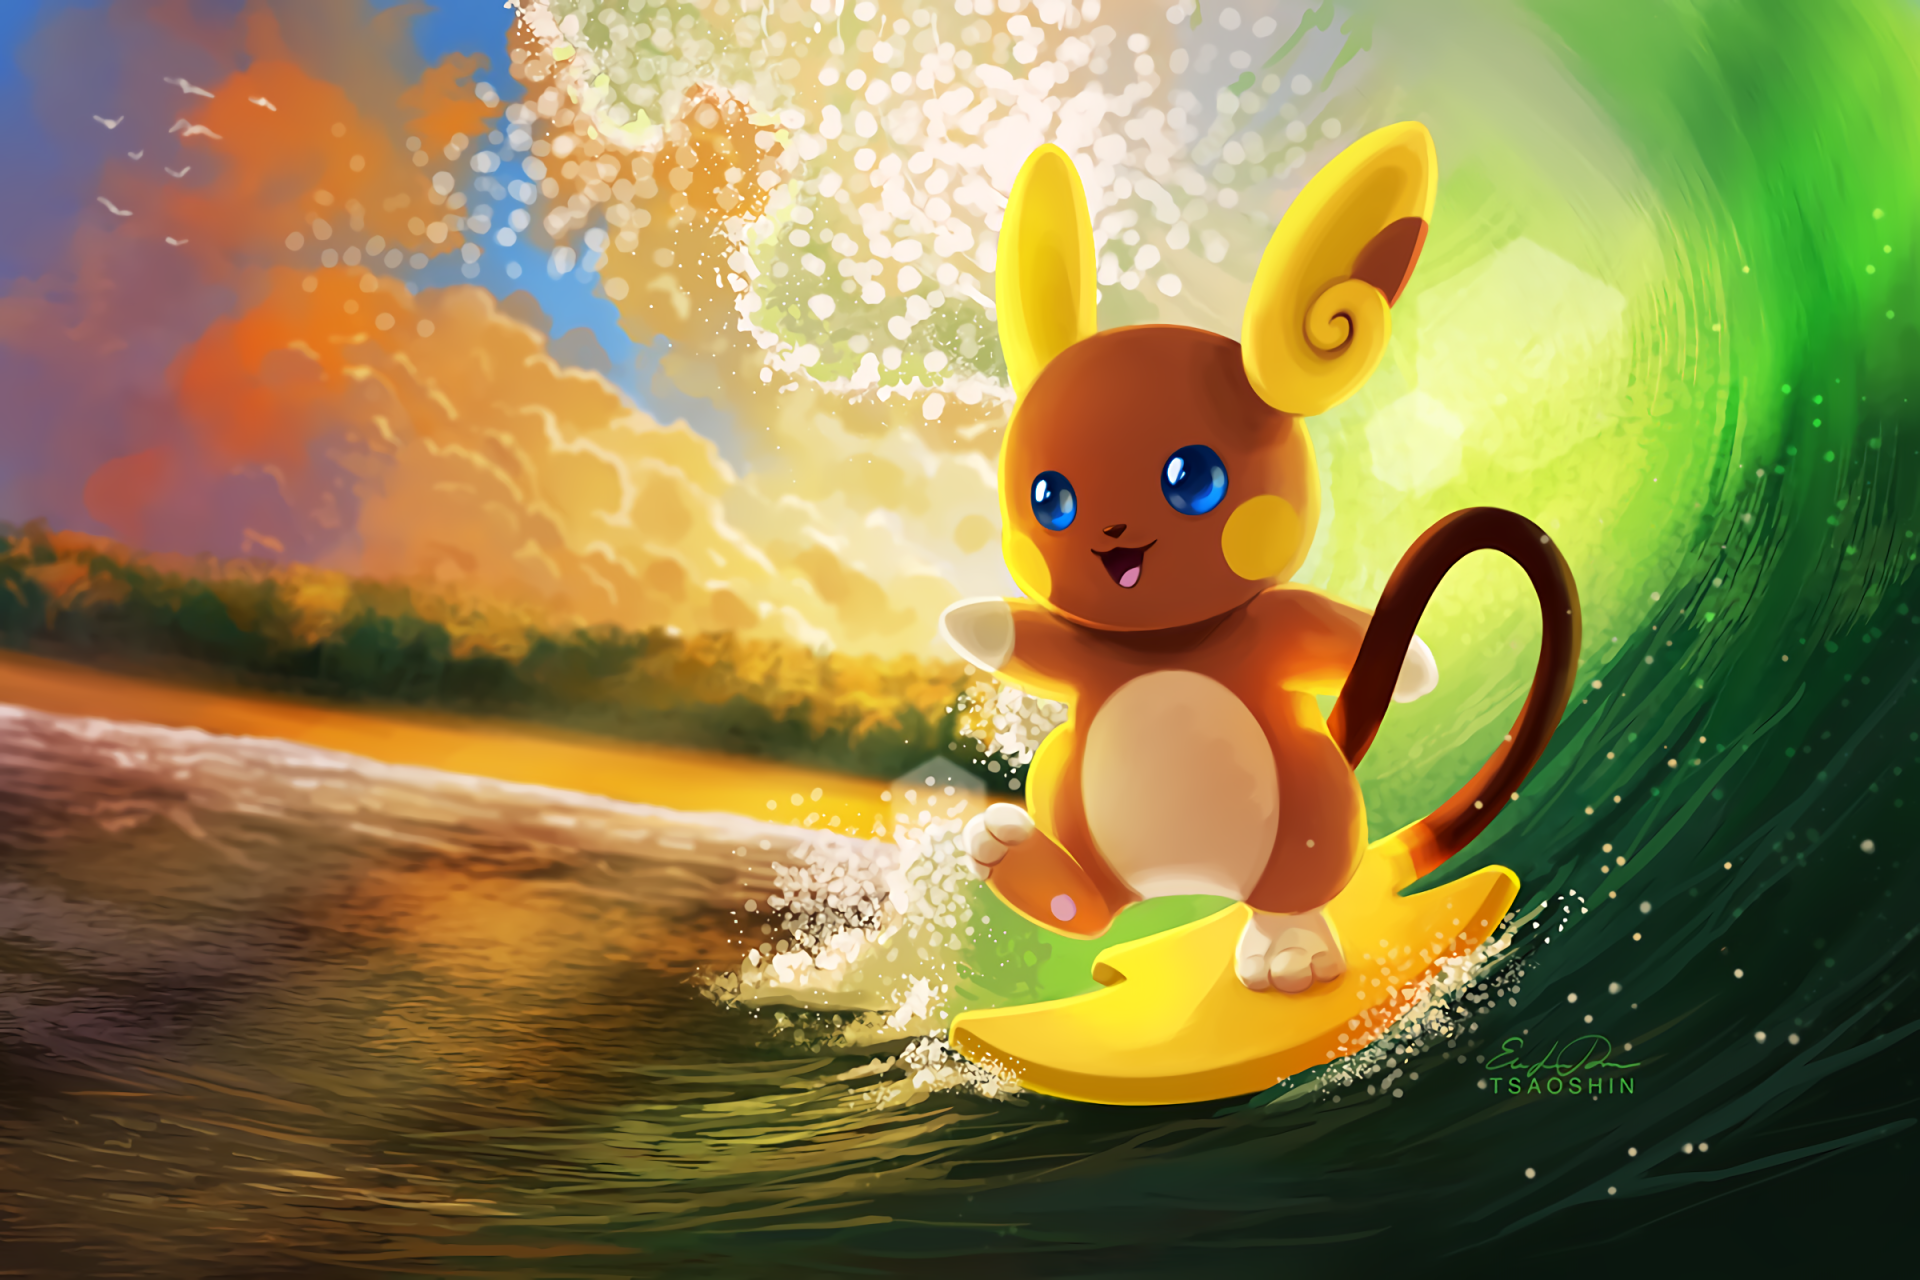 Video Game - Pokémon: Sun and Moon  Raichu (Pokémon) Alolan Raichu Pokémon Pokémon Sun And Moon Wallpaper